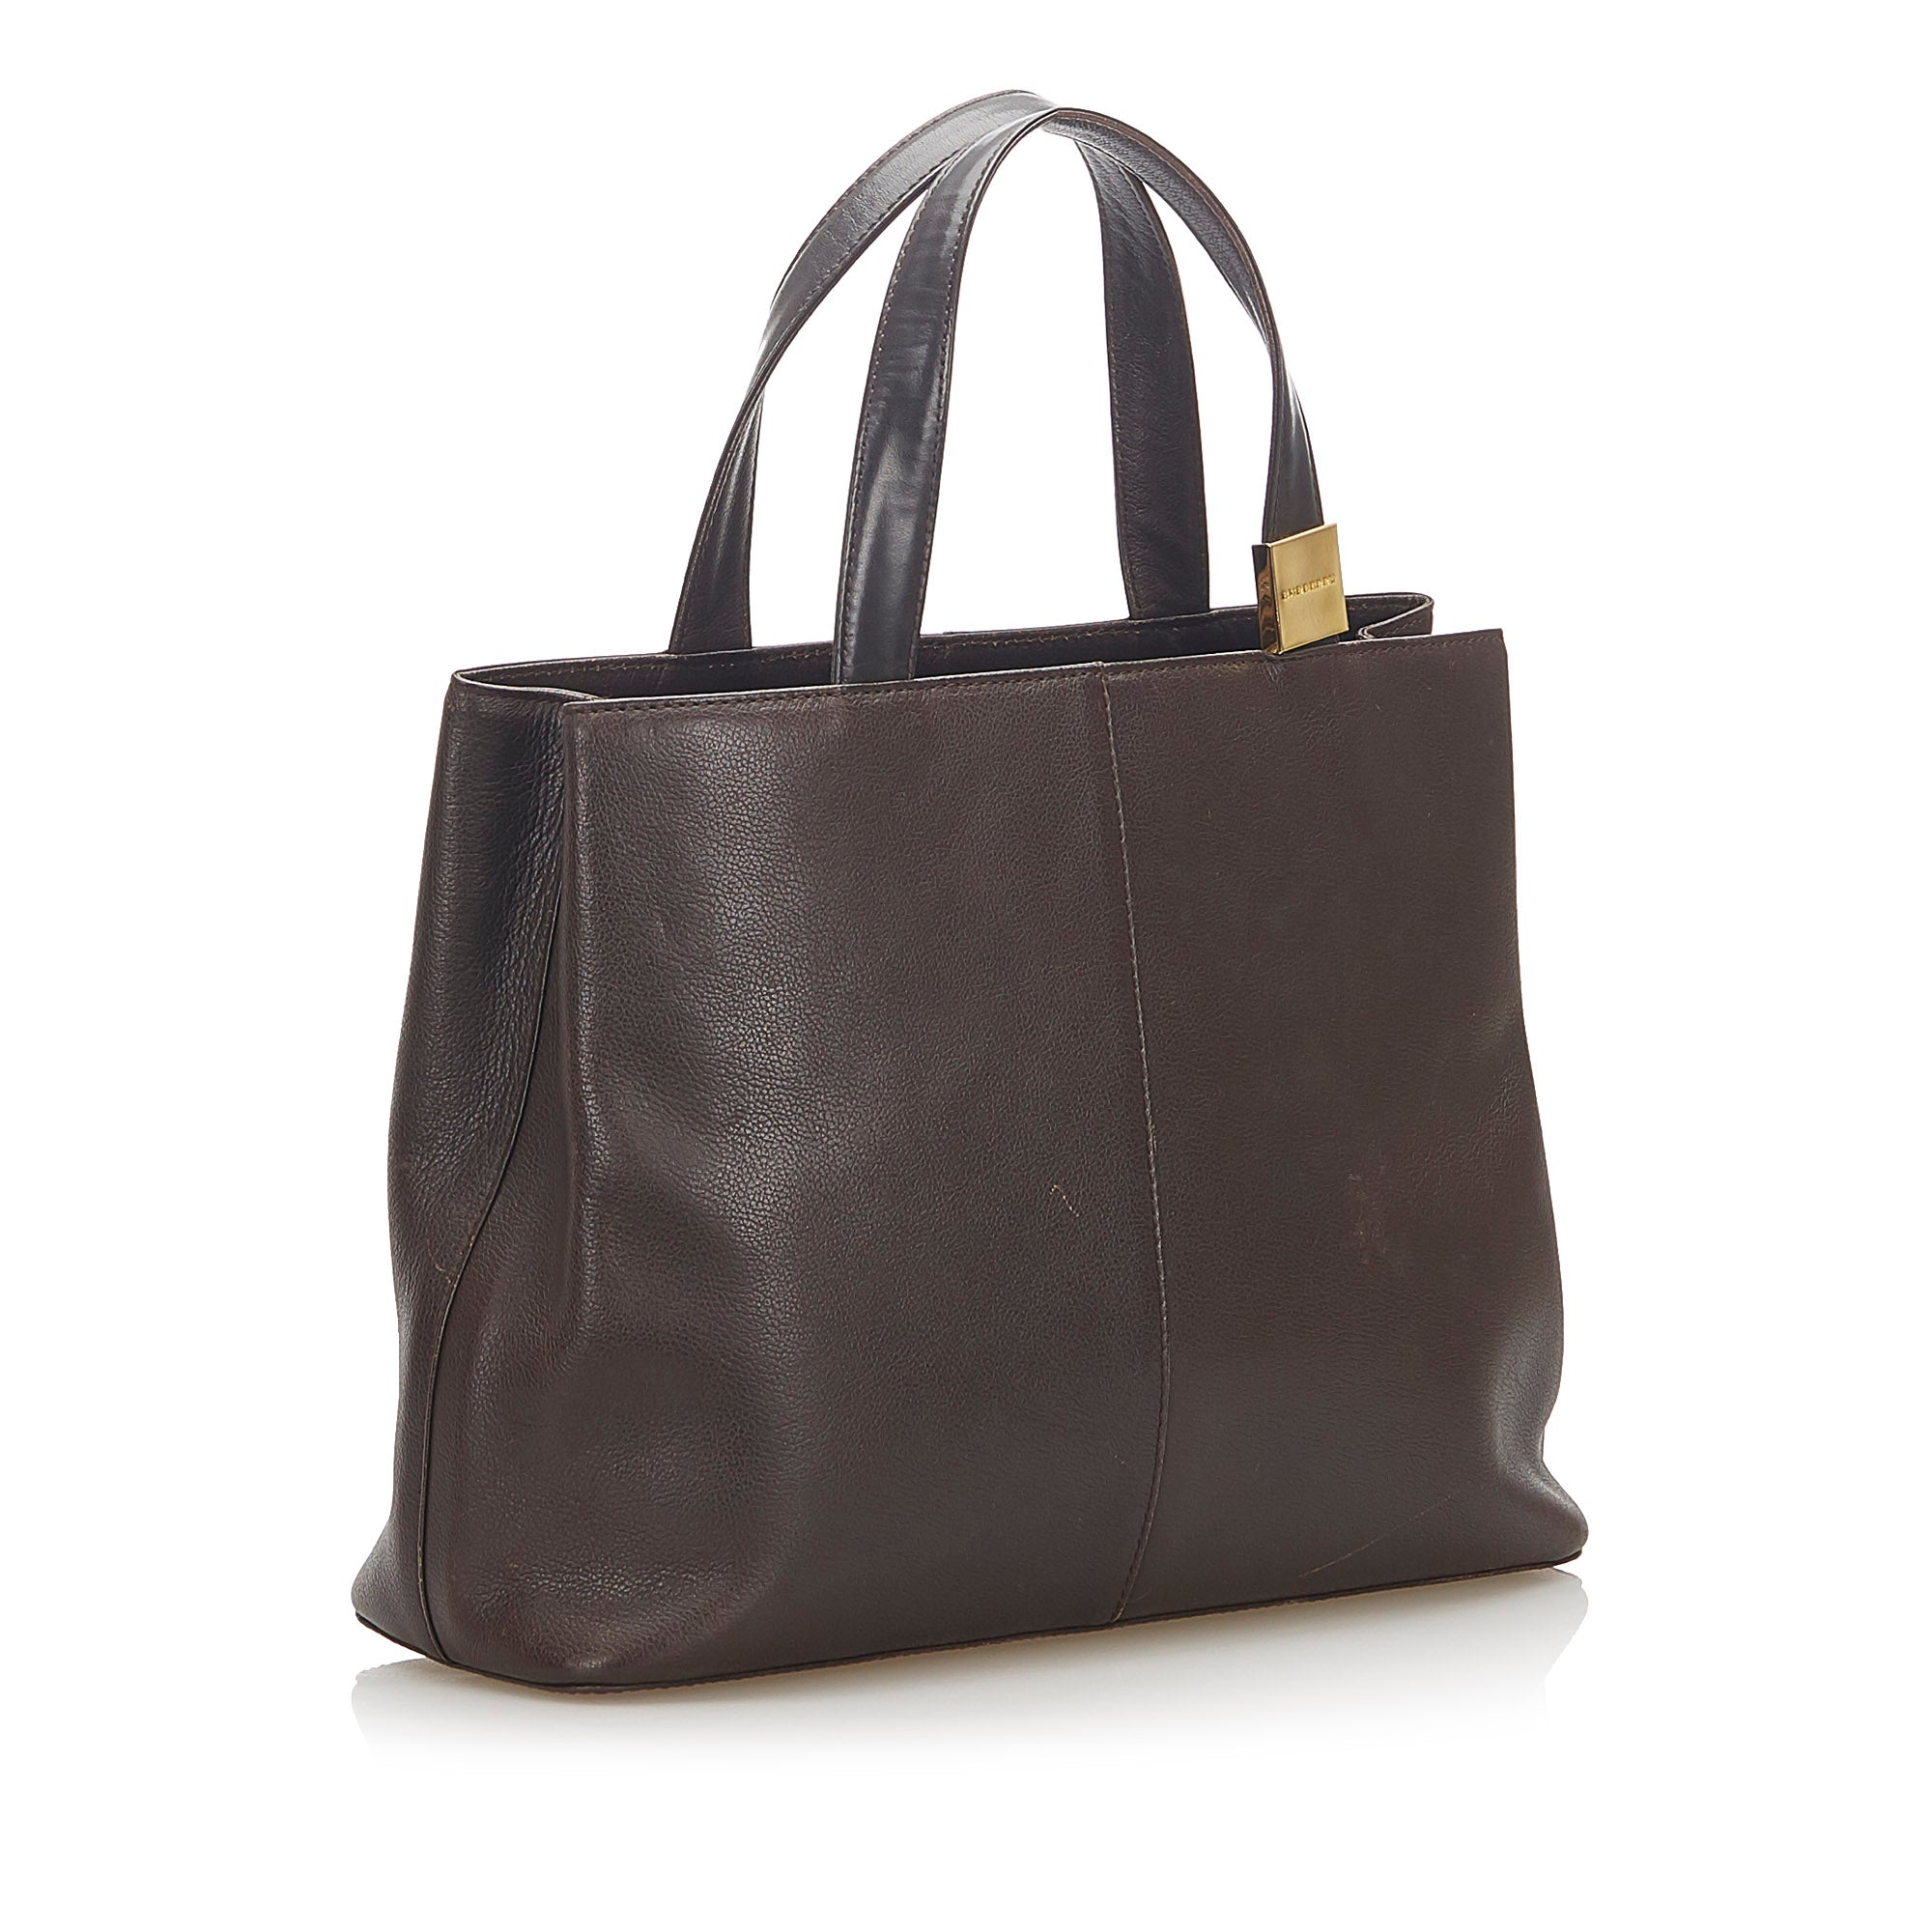 Burberry Brown Leather Handbag